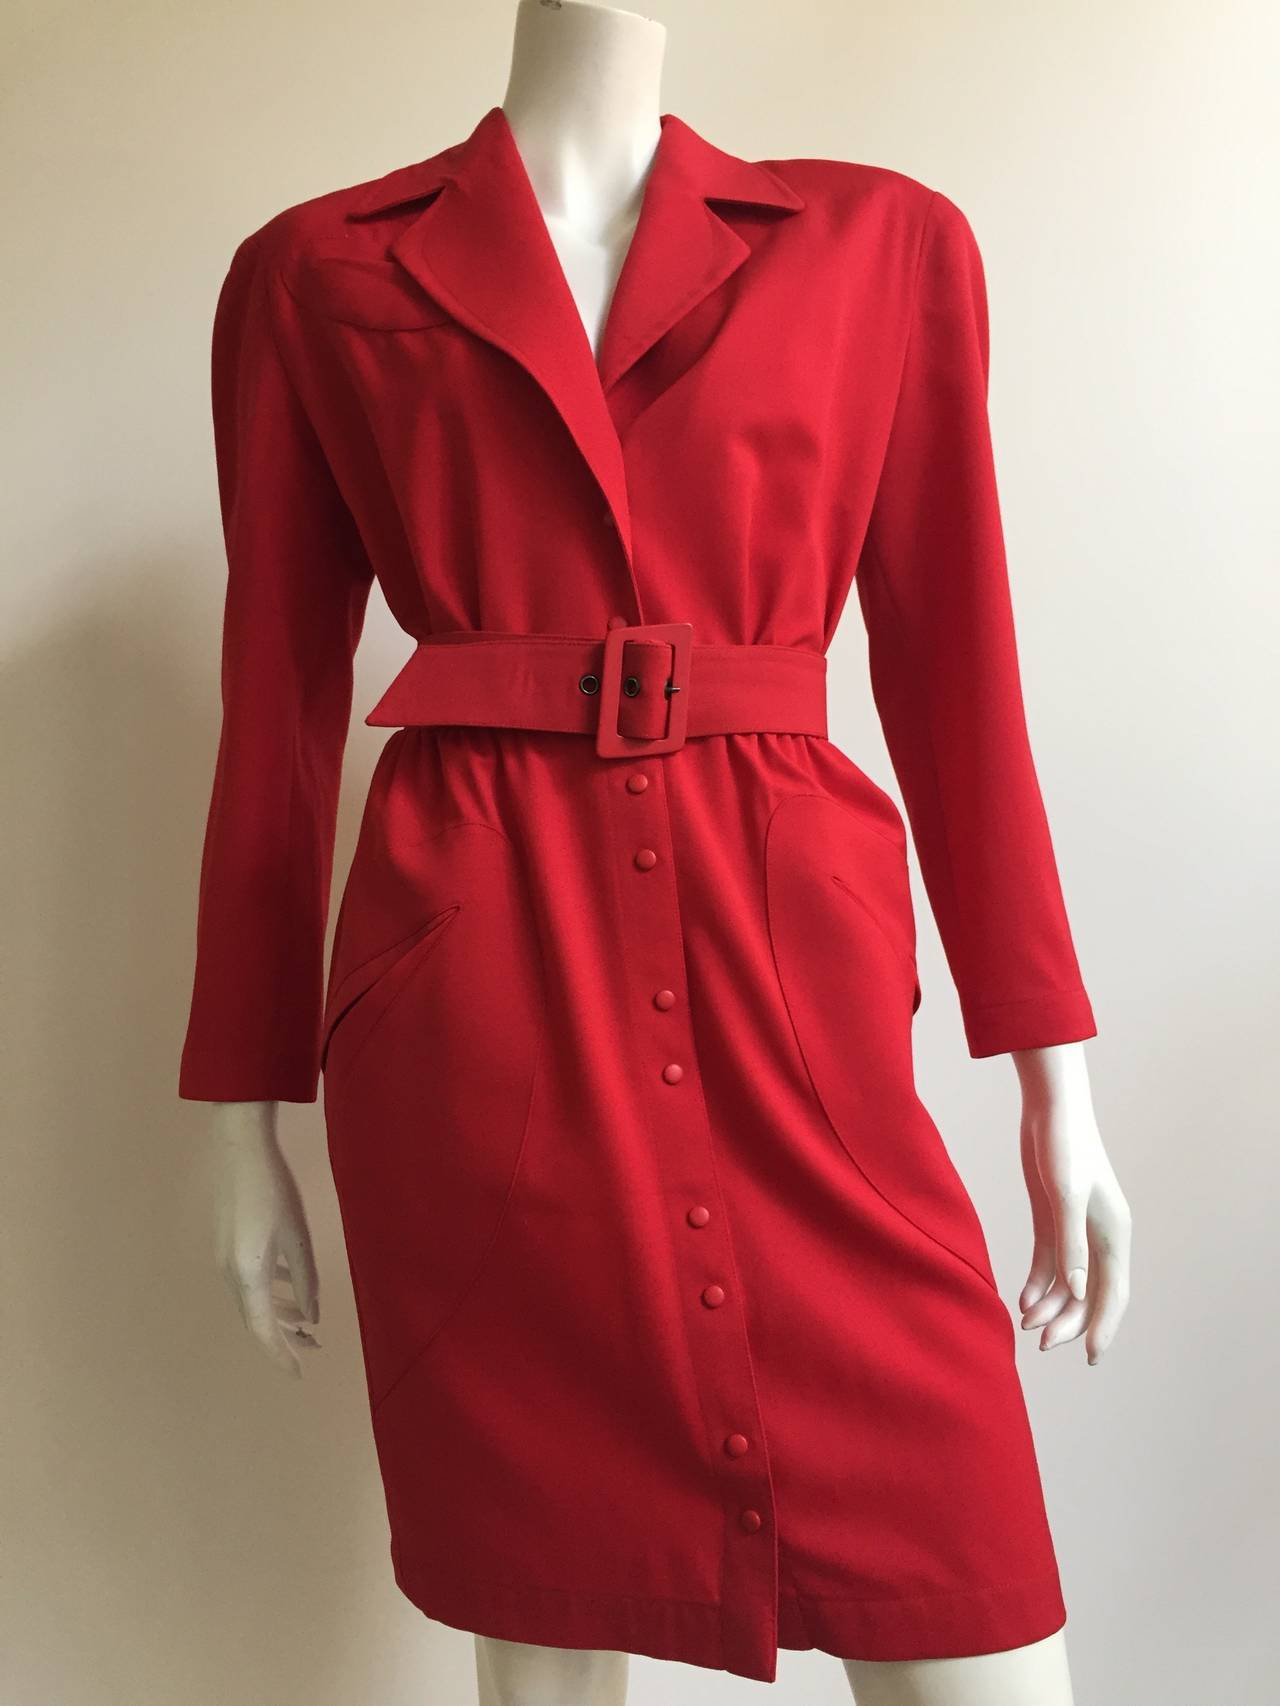 Thierry Mugler 80s Dress With Pockets Size 6. 4